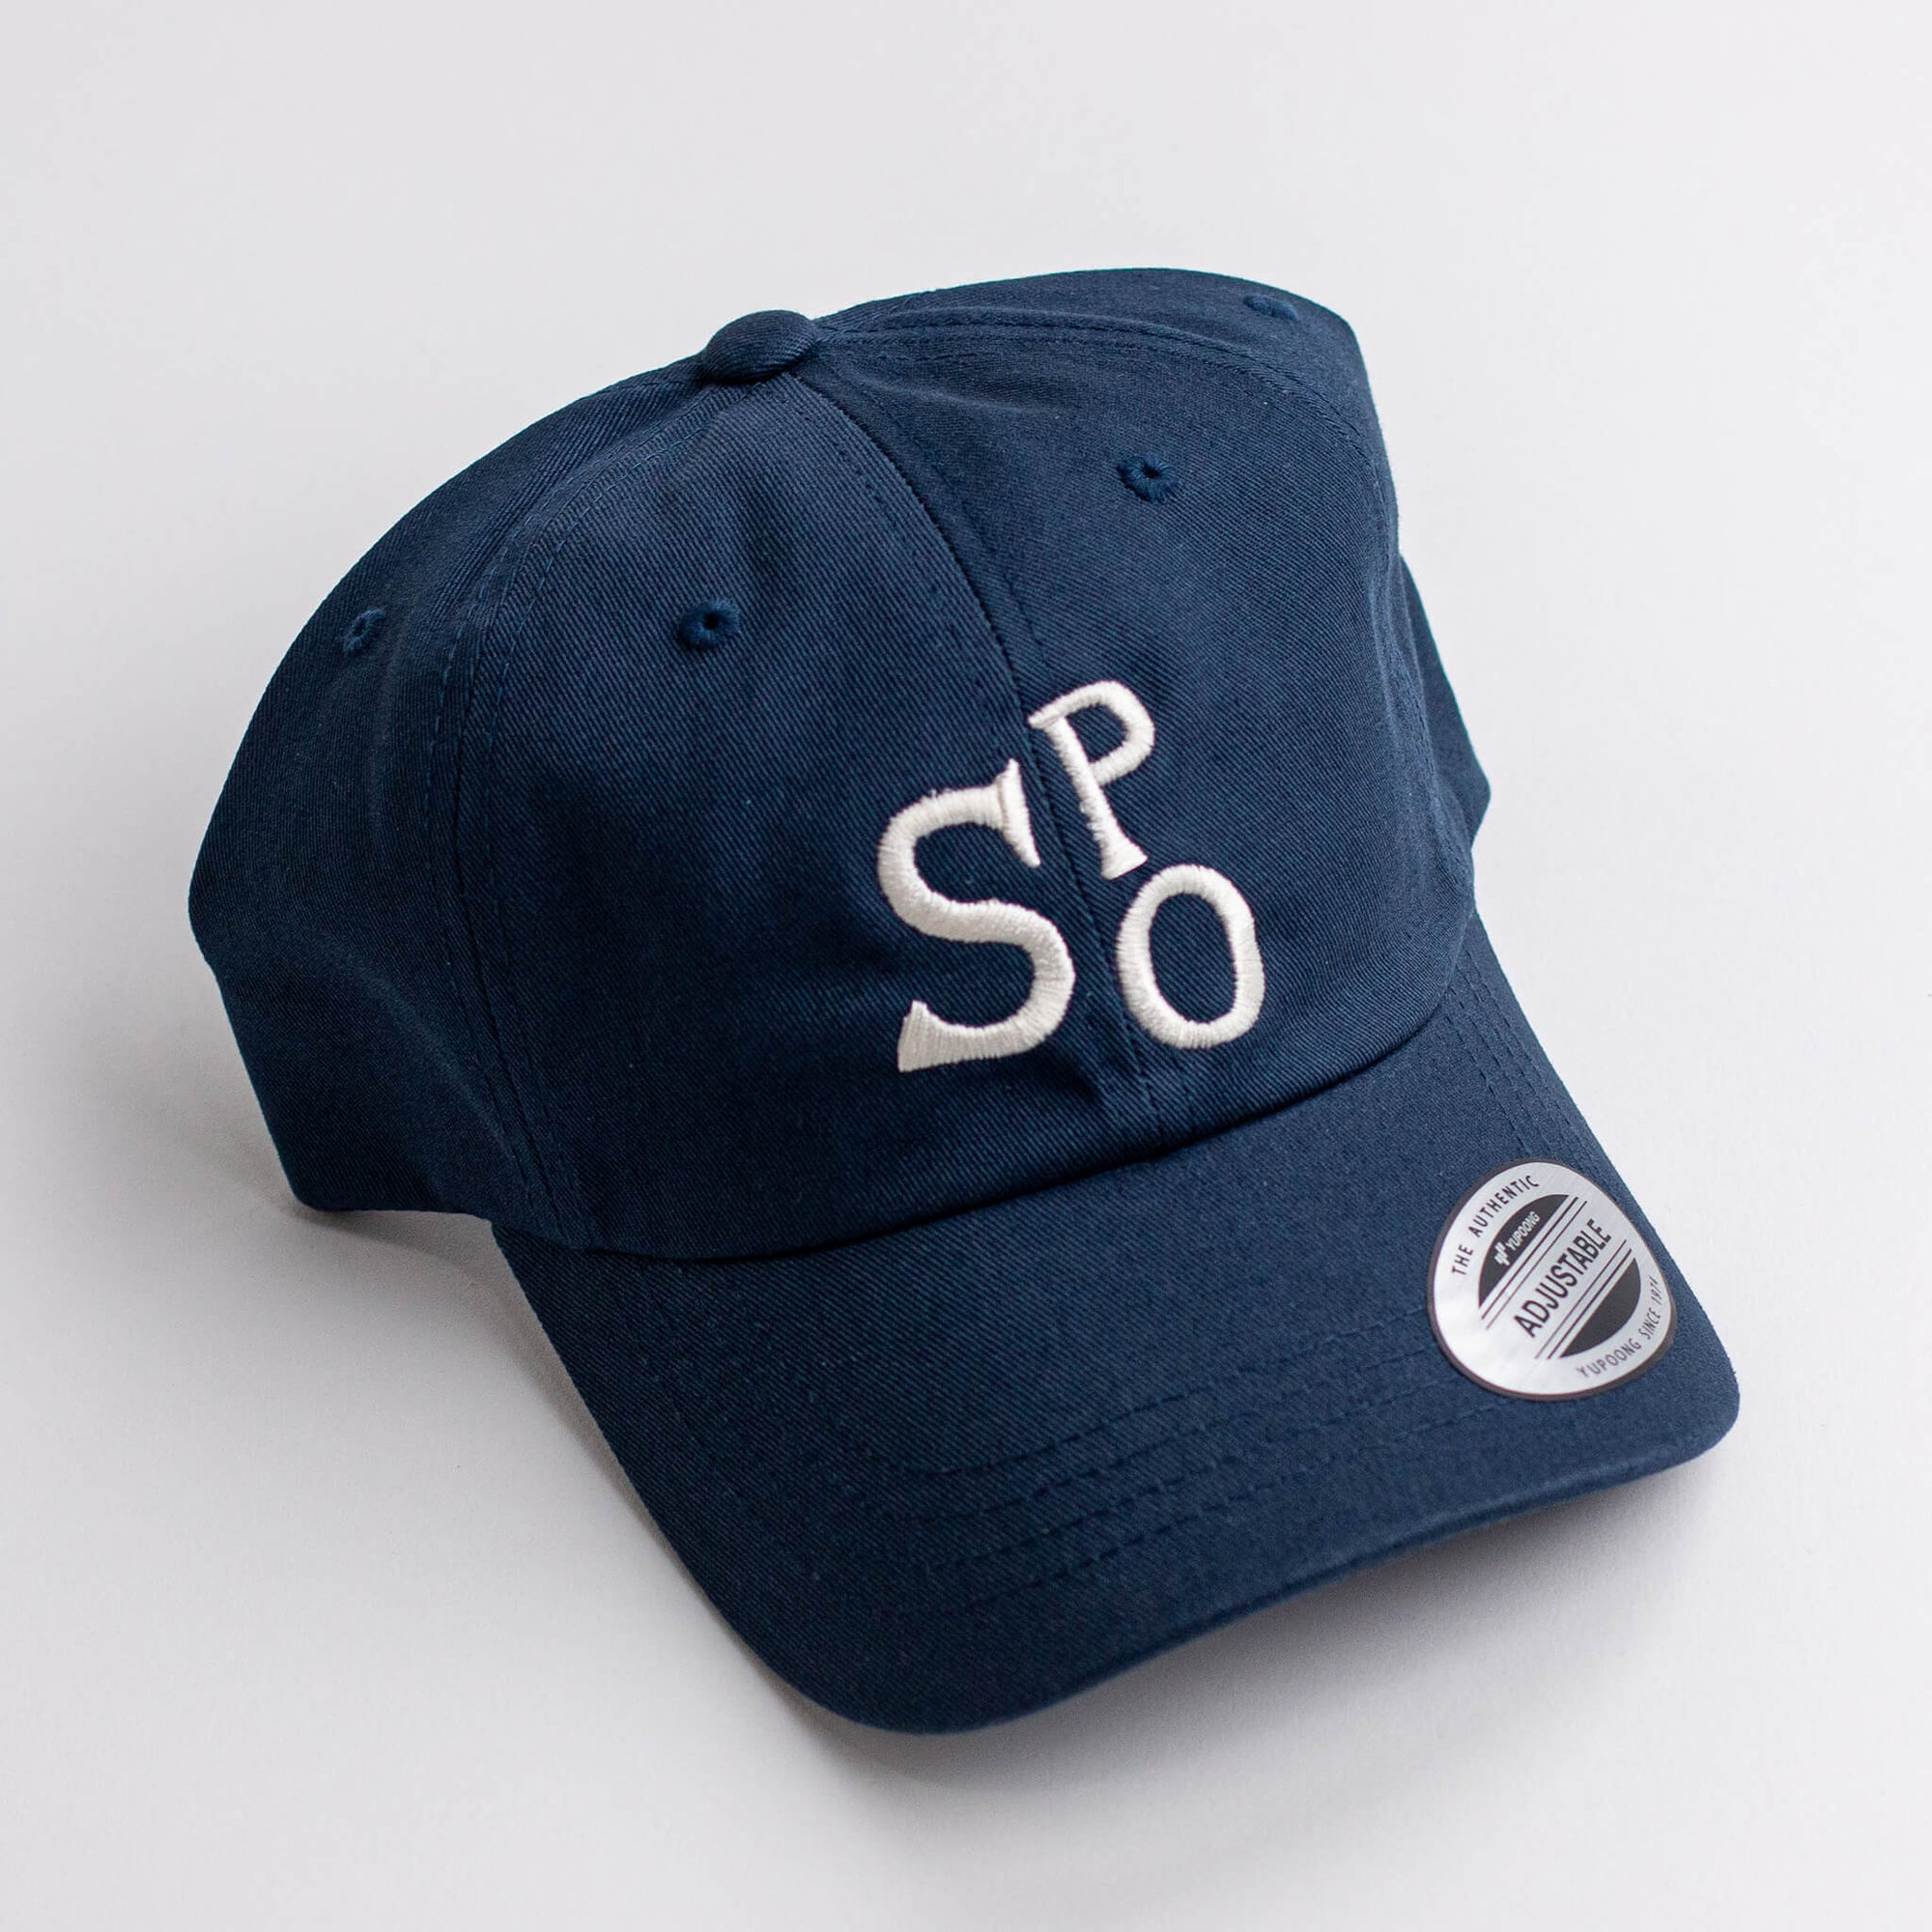 SPO DAD HAT - Embroidered